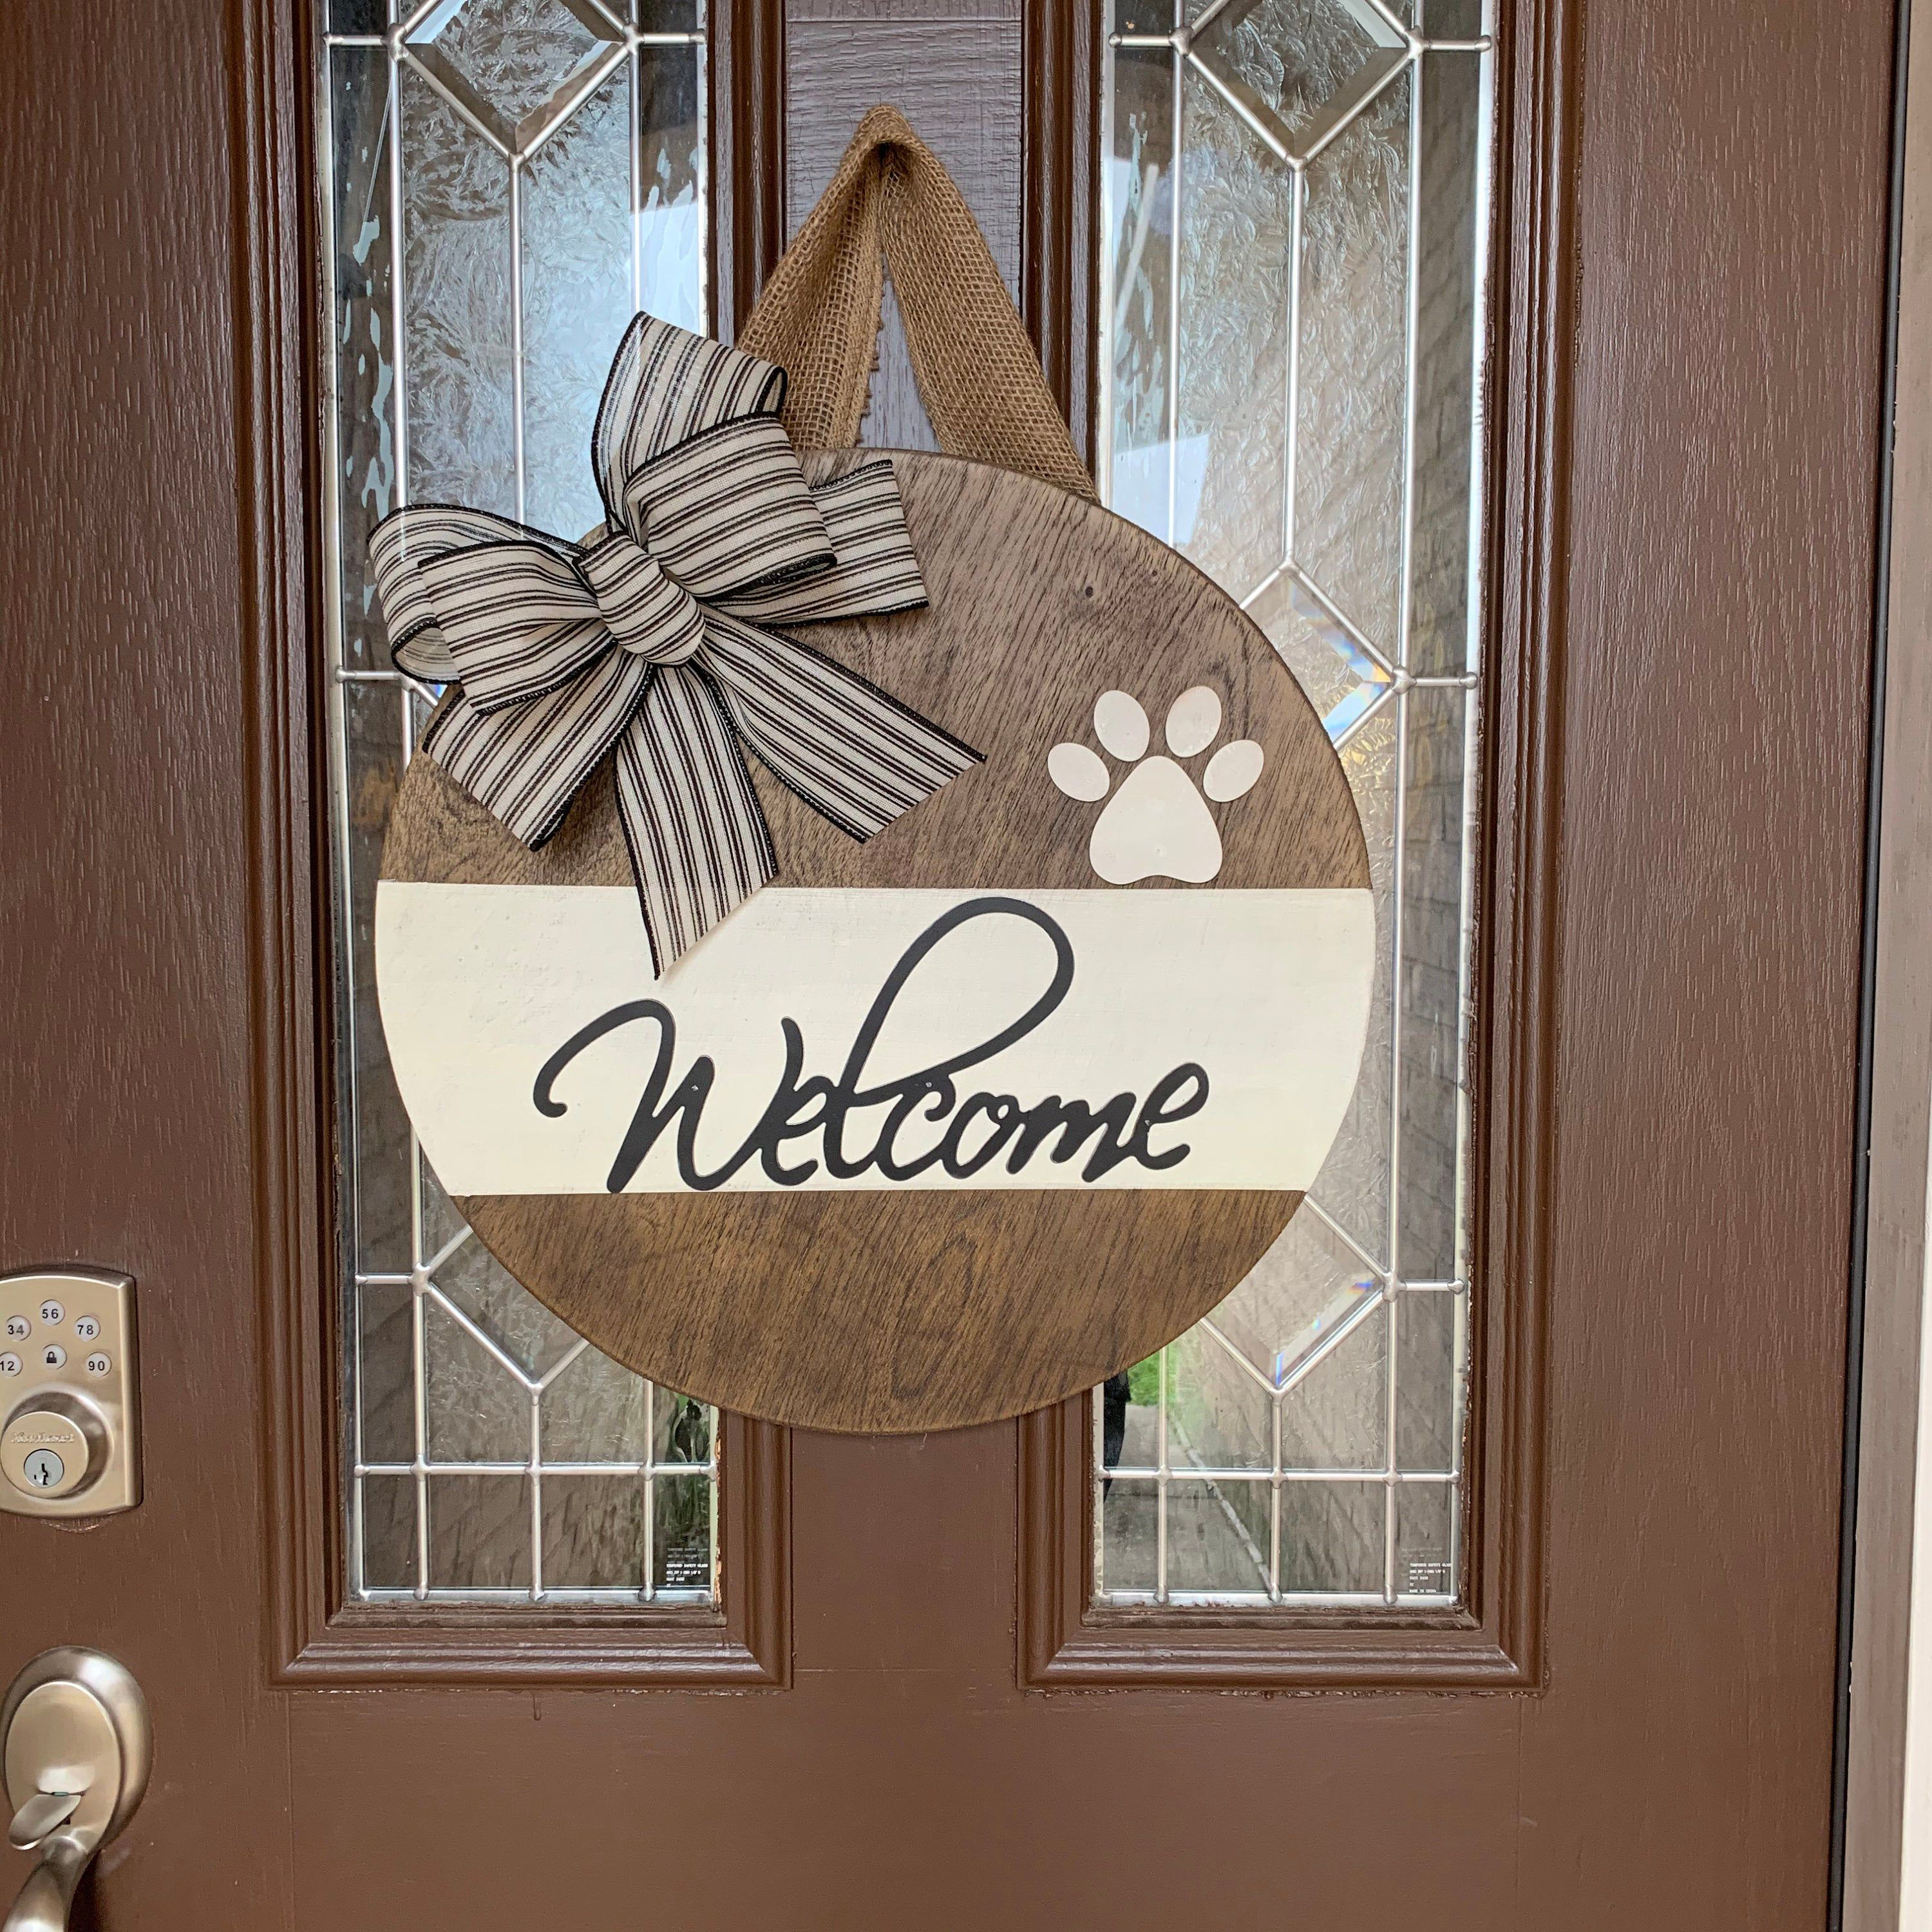 Welcome Round Wood Sign Dog Paw Print Farmhouse Style Door Etsy In 2020 Round Wood Sign Door Signs Diy Wooden Door Signs